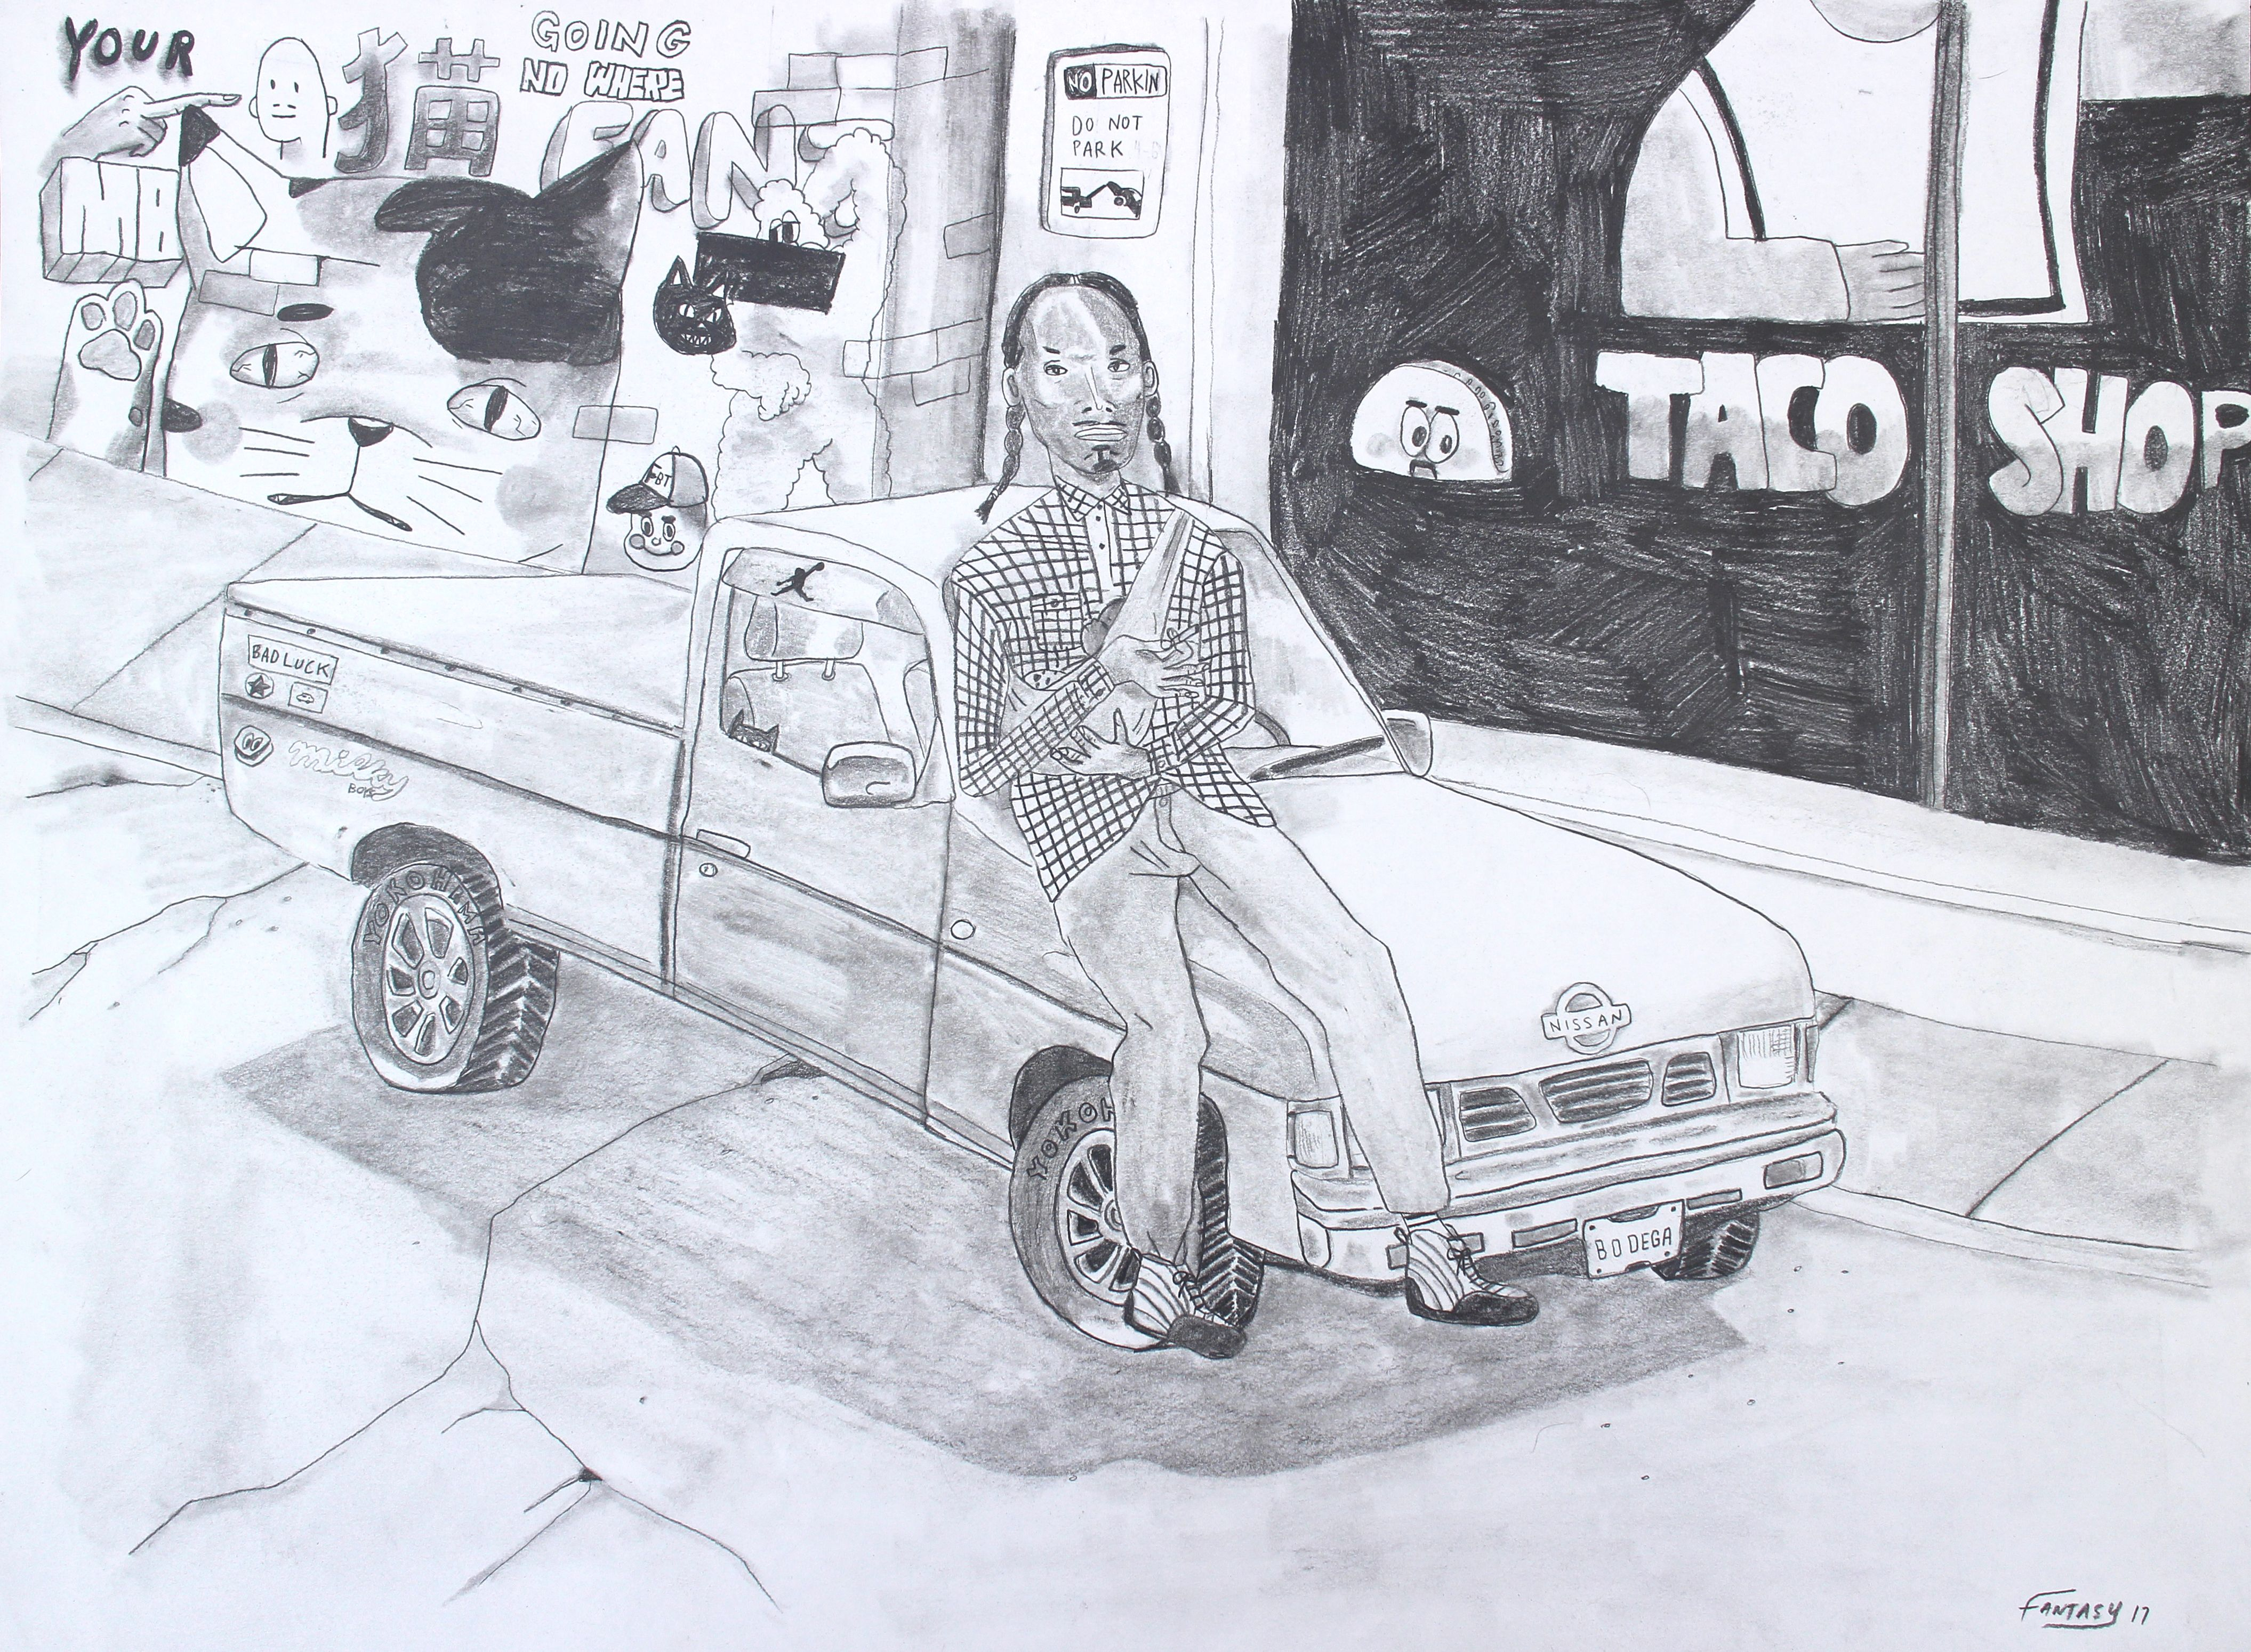 Snoop Dogg's Nissan D21 - drawing - pencil on paper